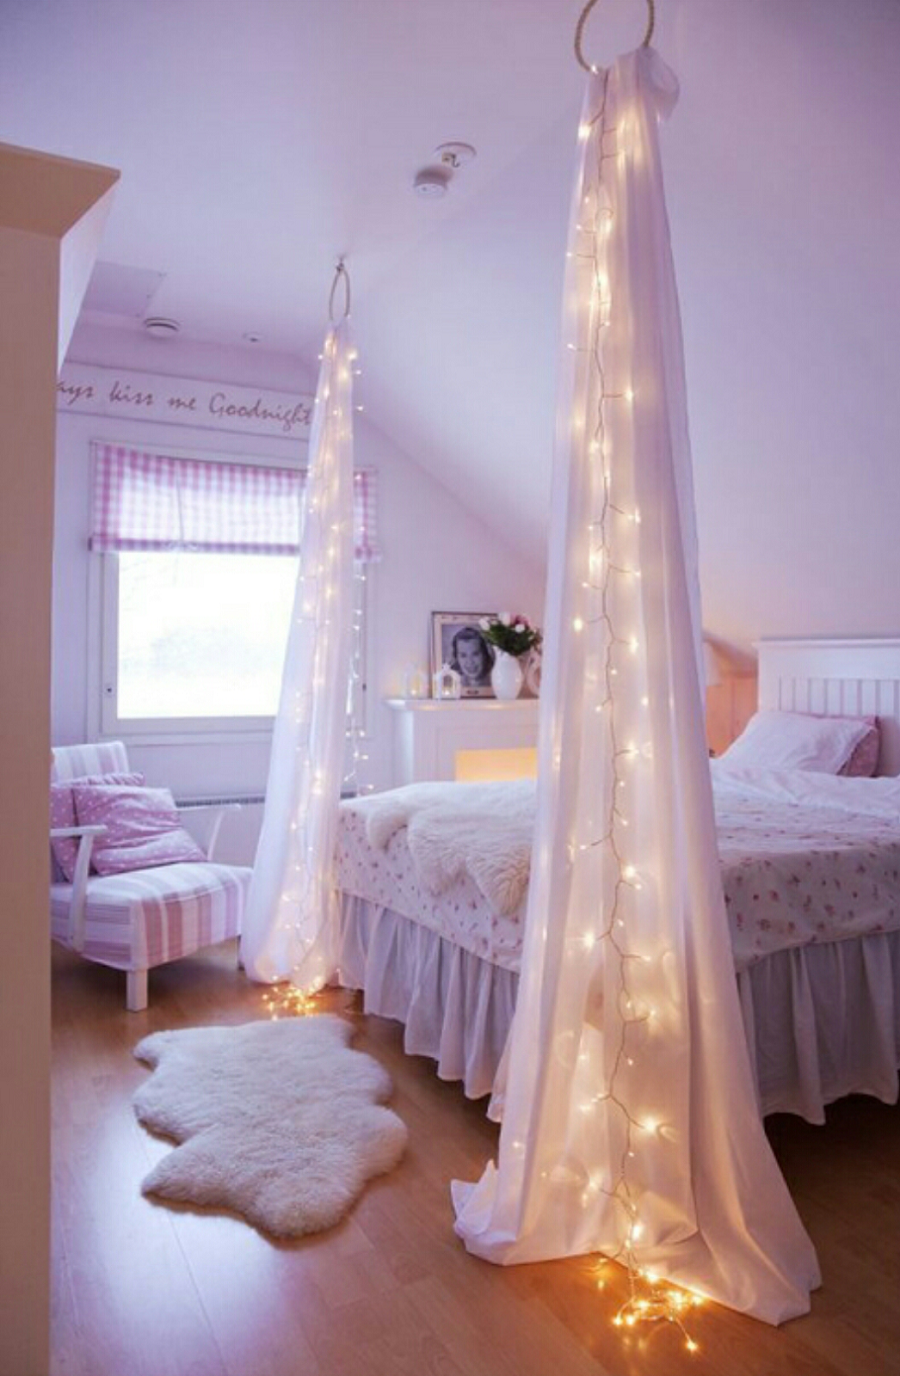 AD-Dreamy-Things-You-Didn't-Realize-Your-Bedroom-Need-12